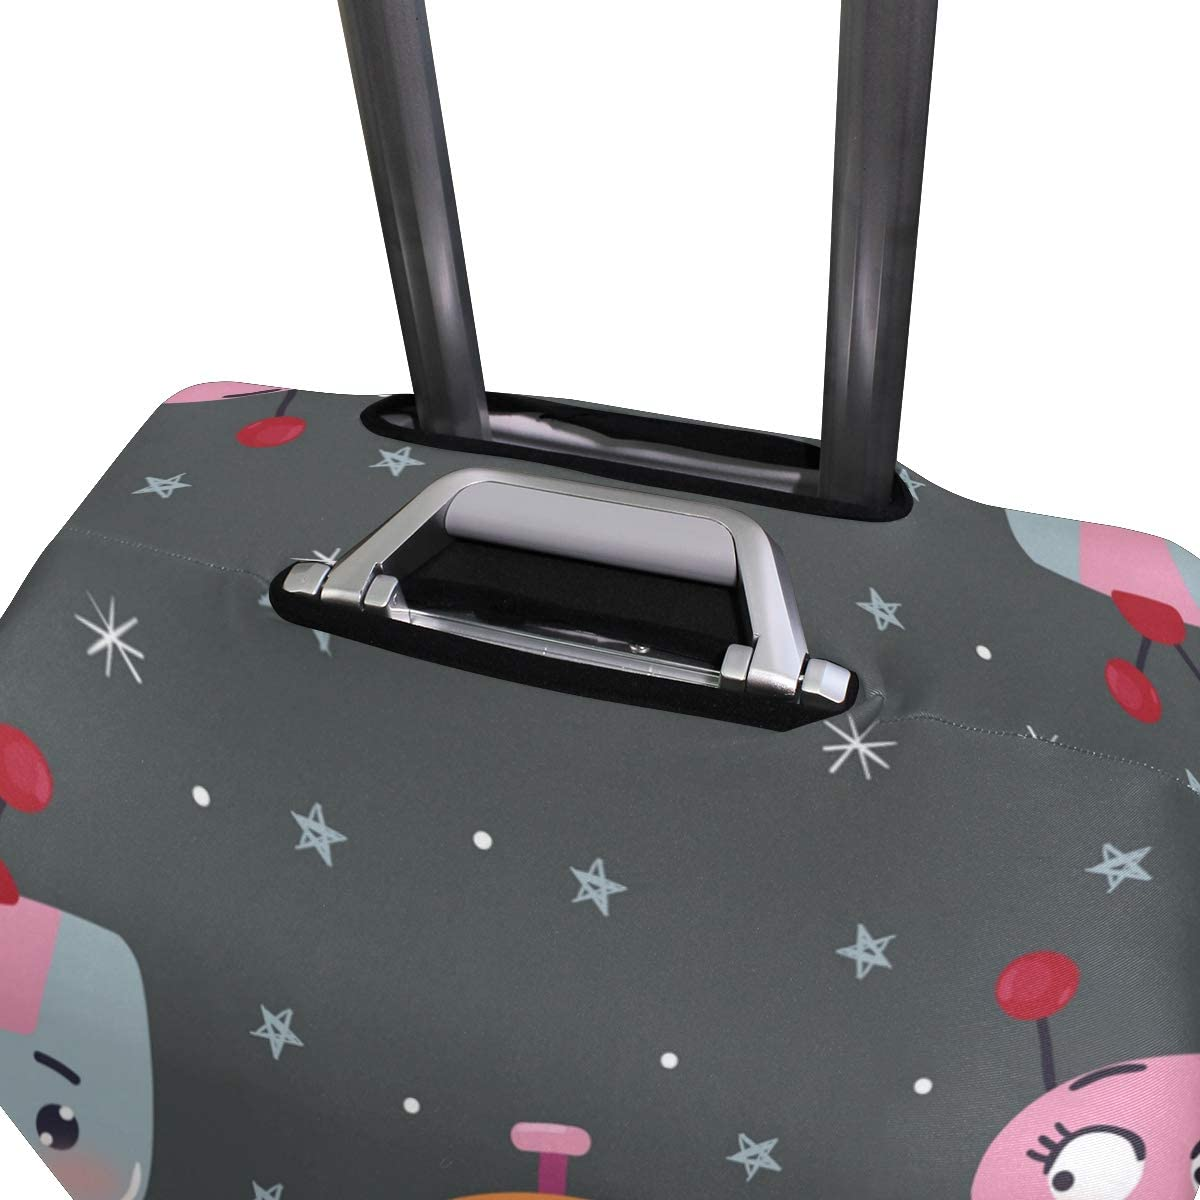 FOLPPLY Cute Cartoon Robot Luggage Cover Baggage Suitcase Travel Protector Fit for 18-32 Inch